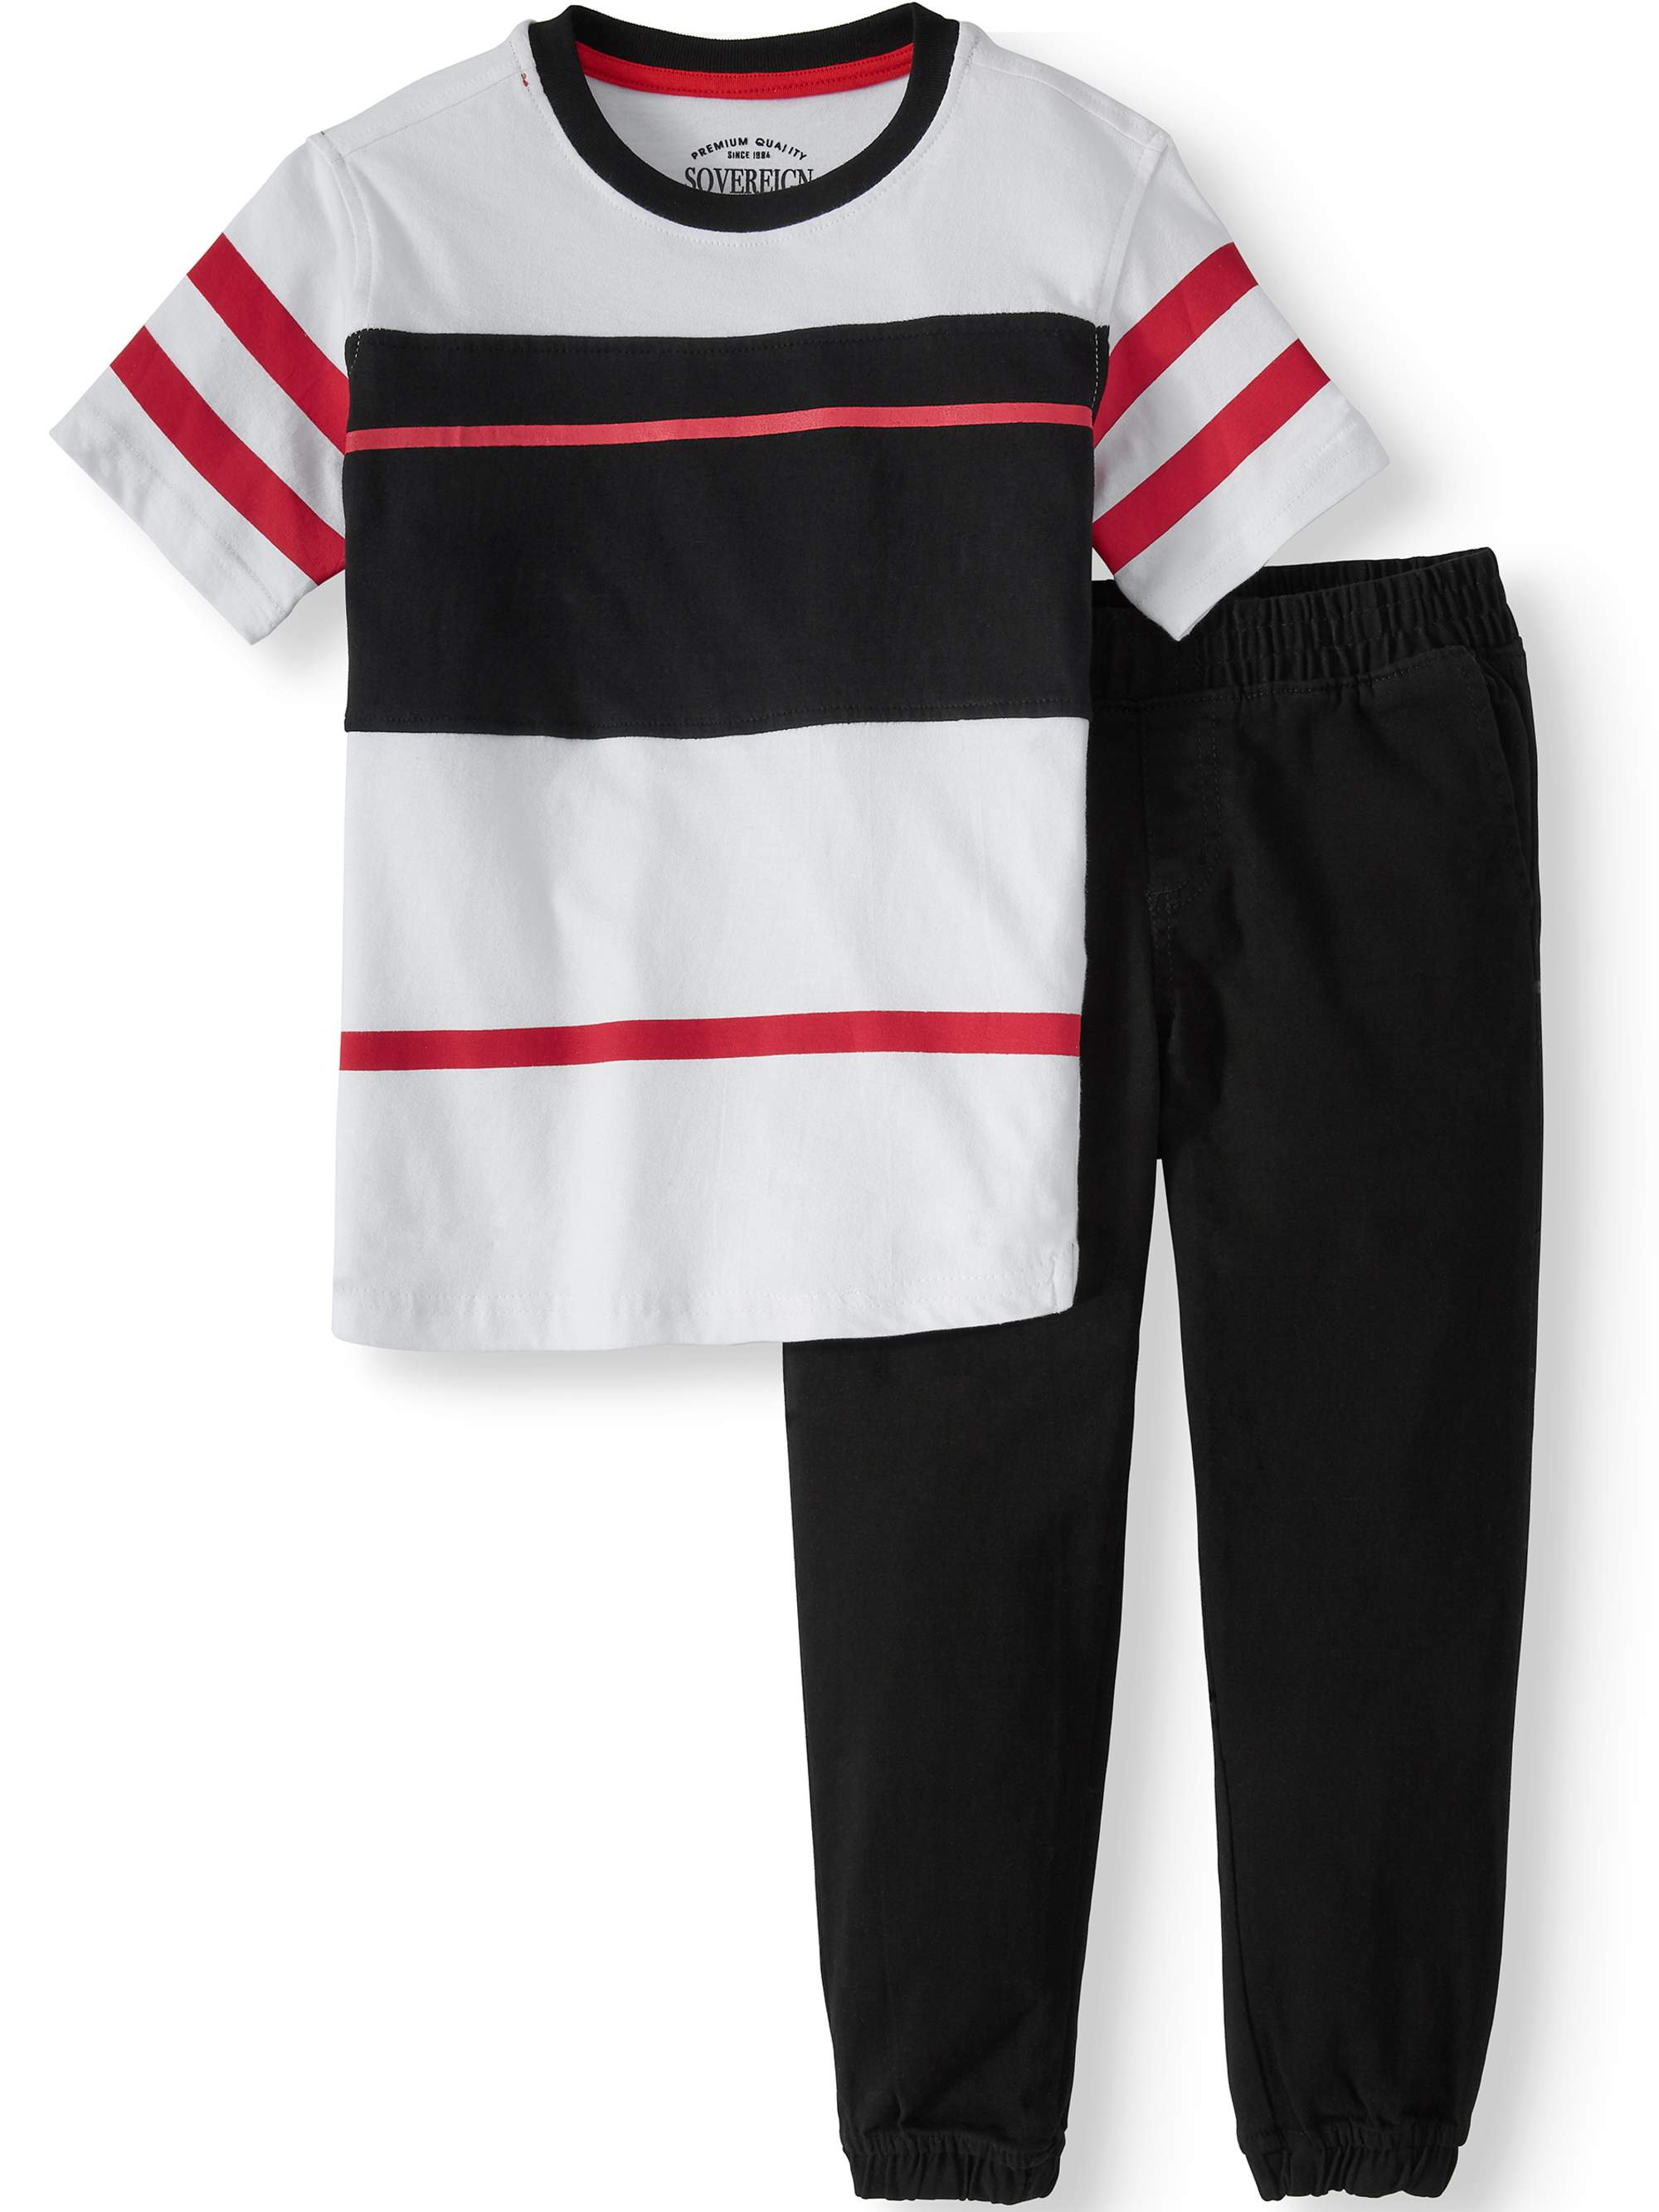 Short Sleeve Tee with Woven Jogger, 2-Piece Outfit Set (Little Boys)